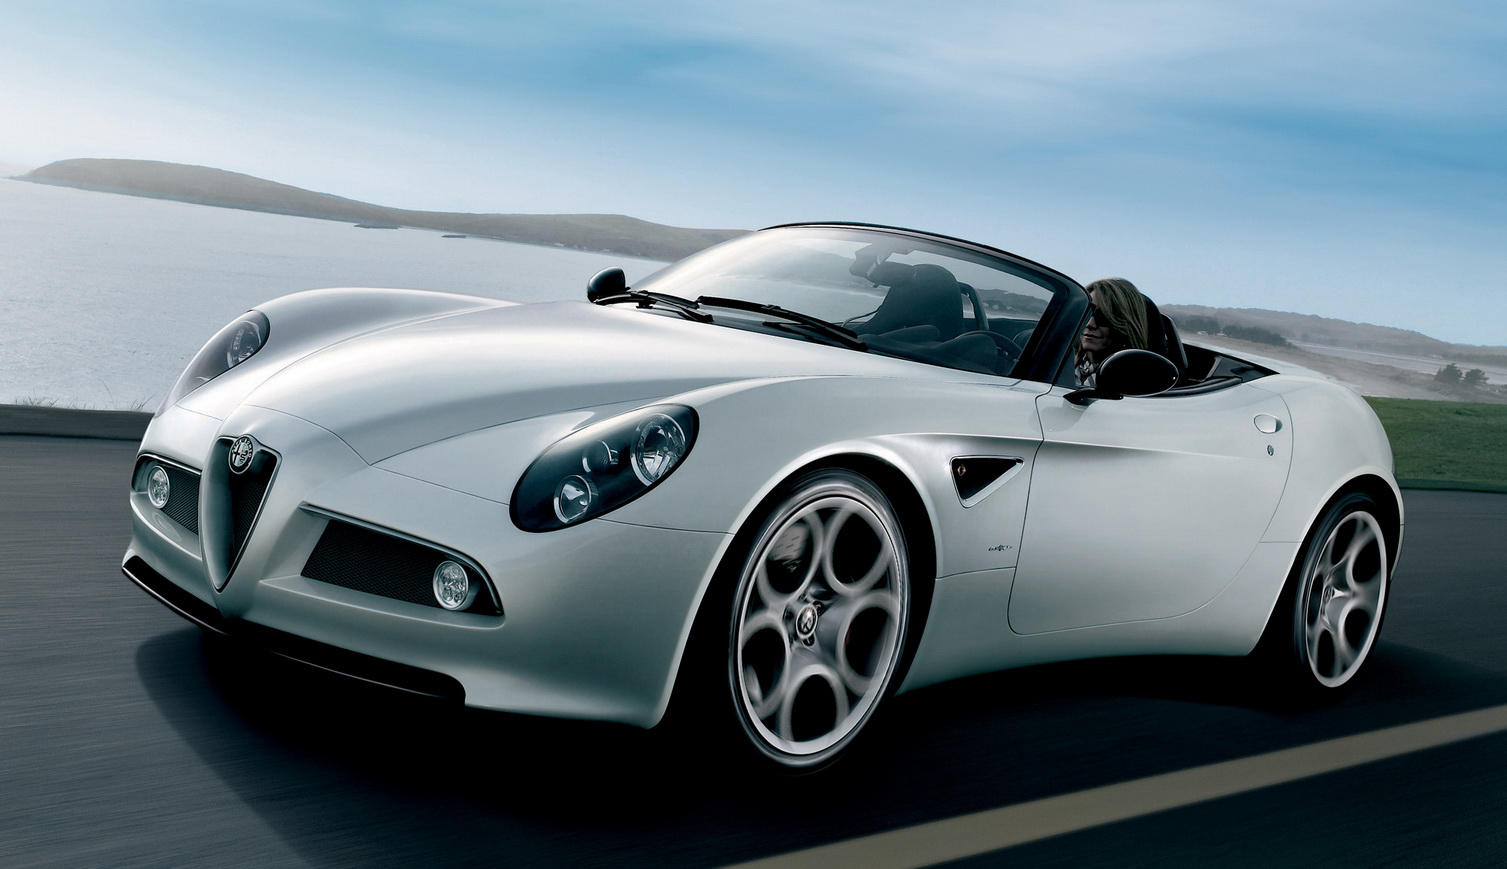 RE: Alfa Romeo 8C: You Know You Want To